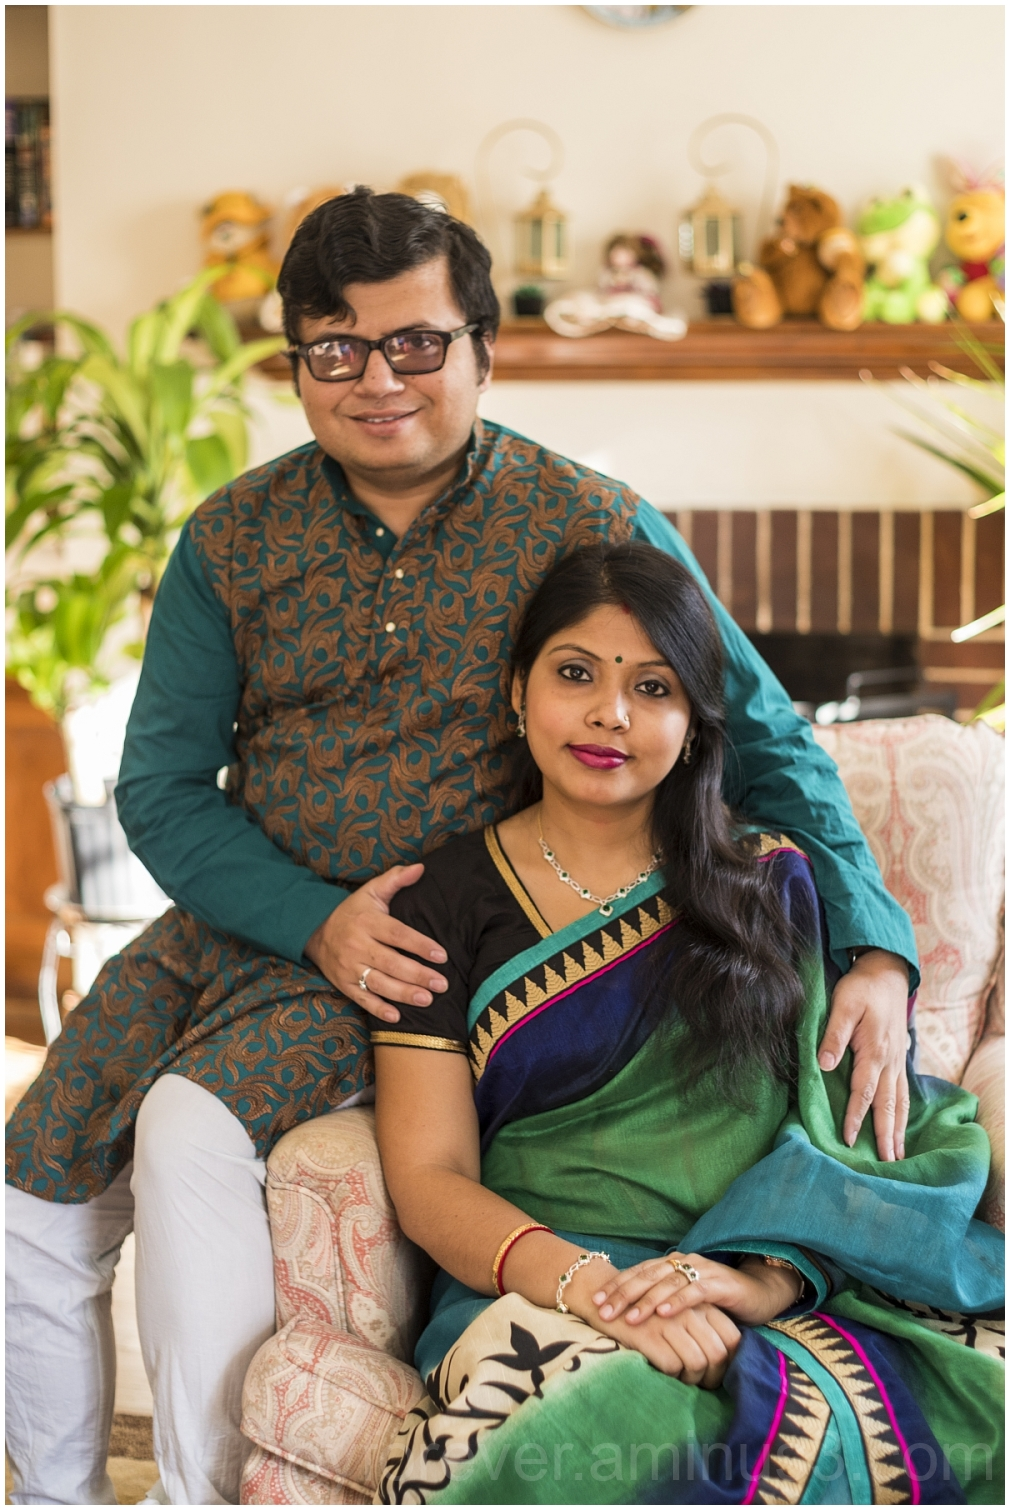 Three man woman couple anniversary Indian Bengali